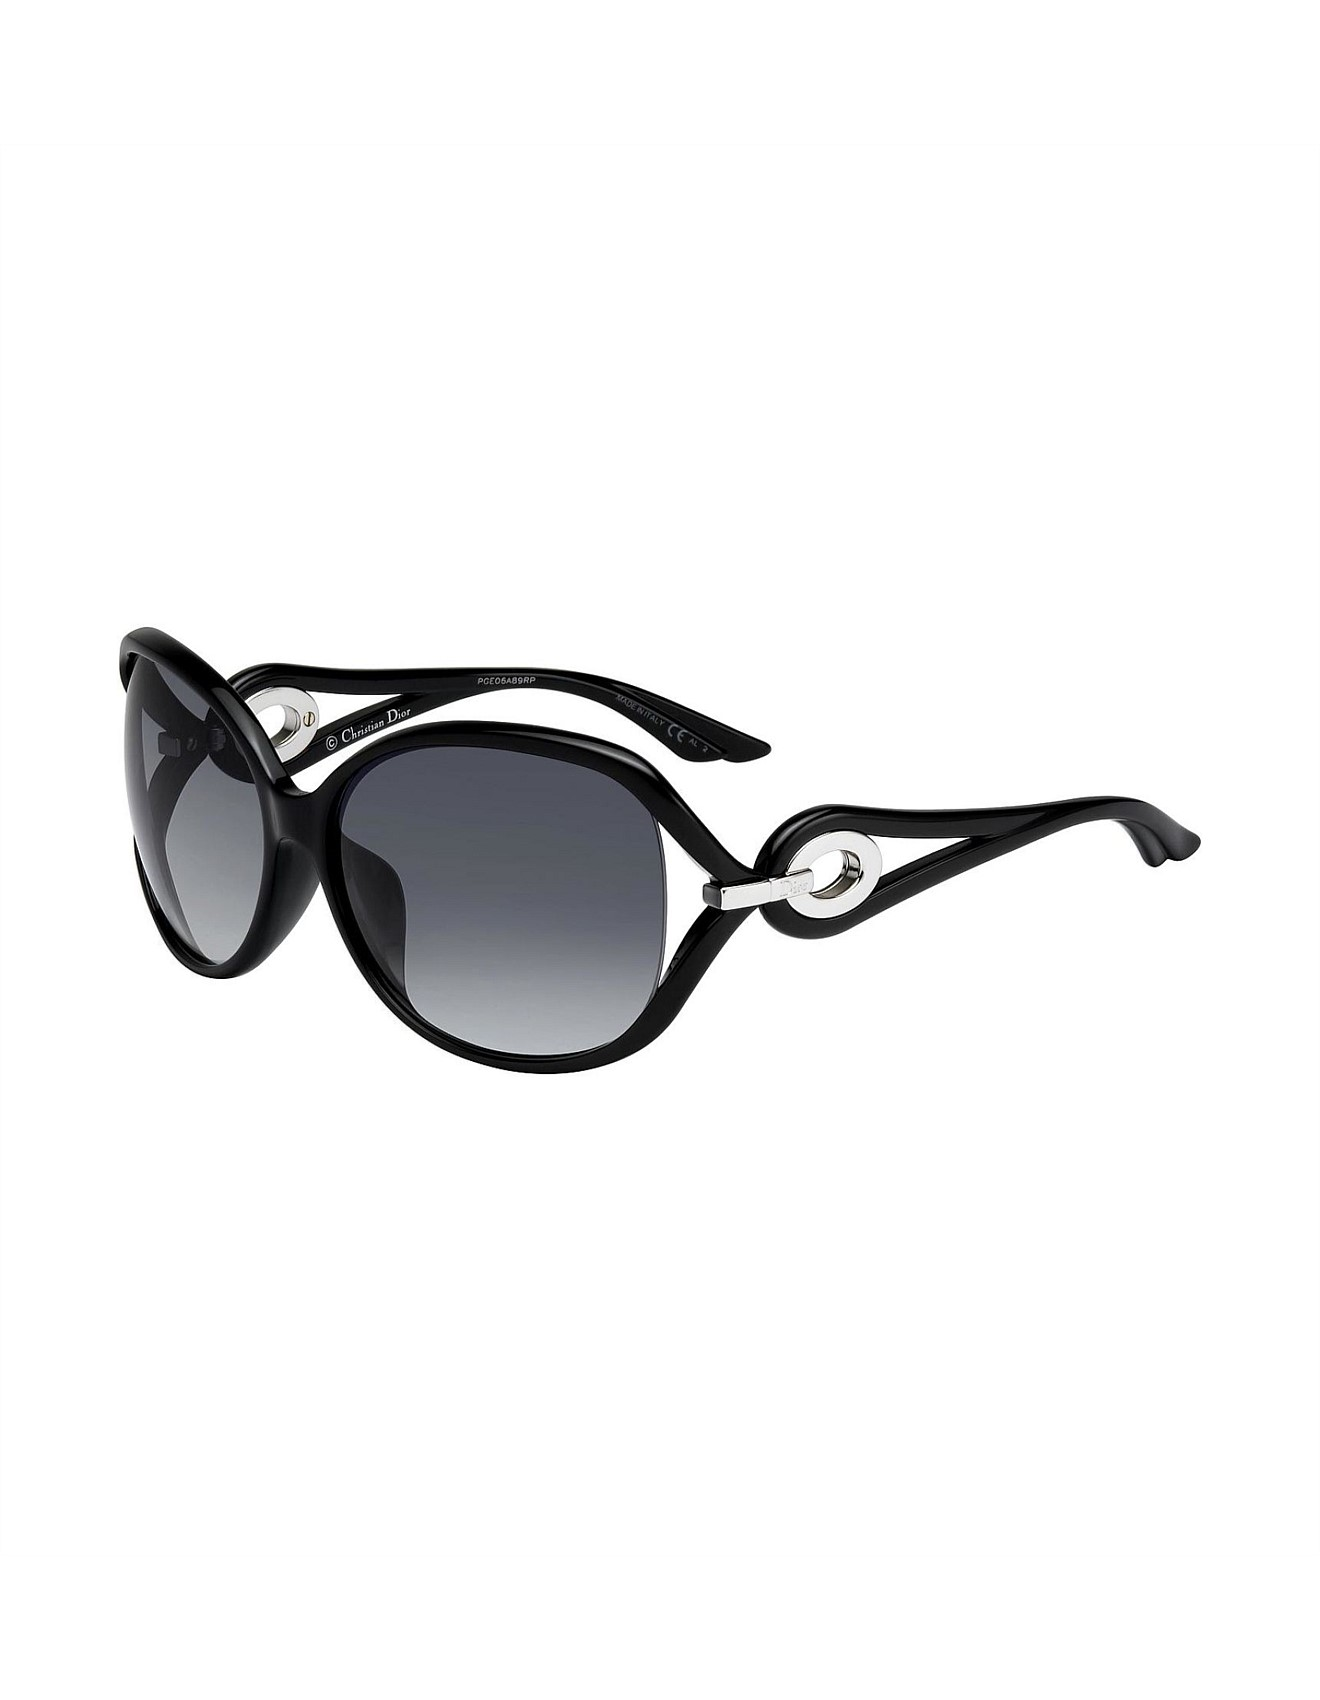 462683b9005a3 Volute Sunglasses